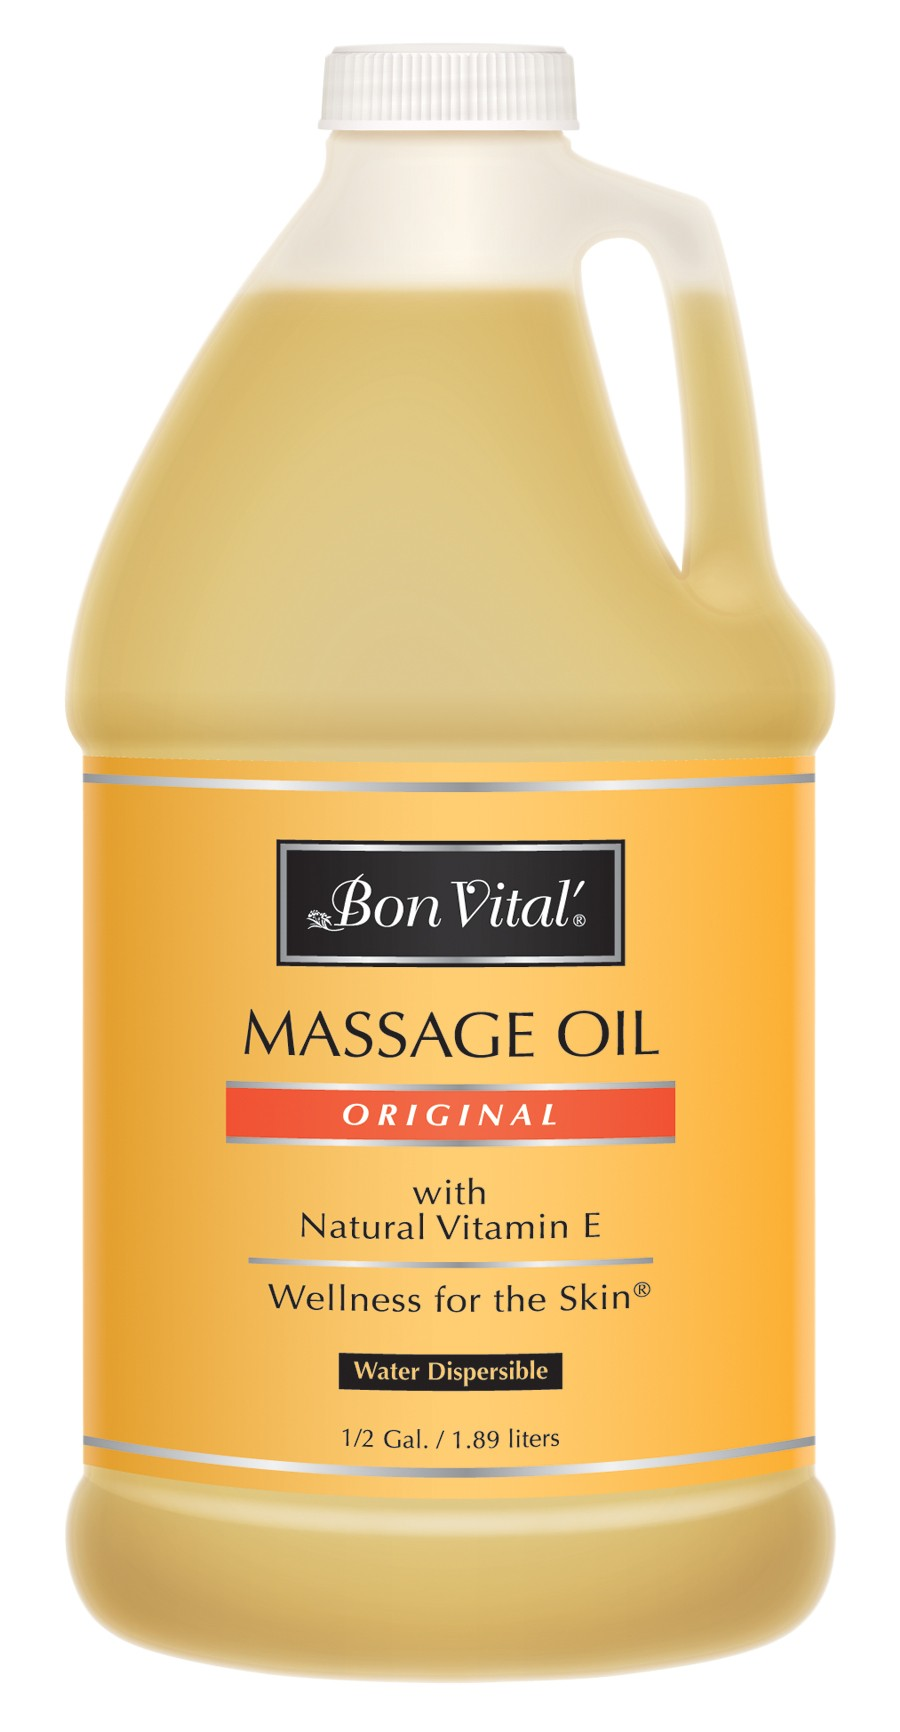 Original Massage Oil - 1/2 gal